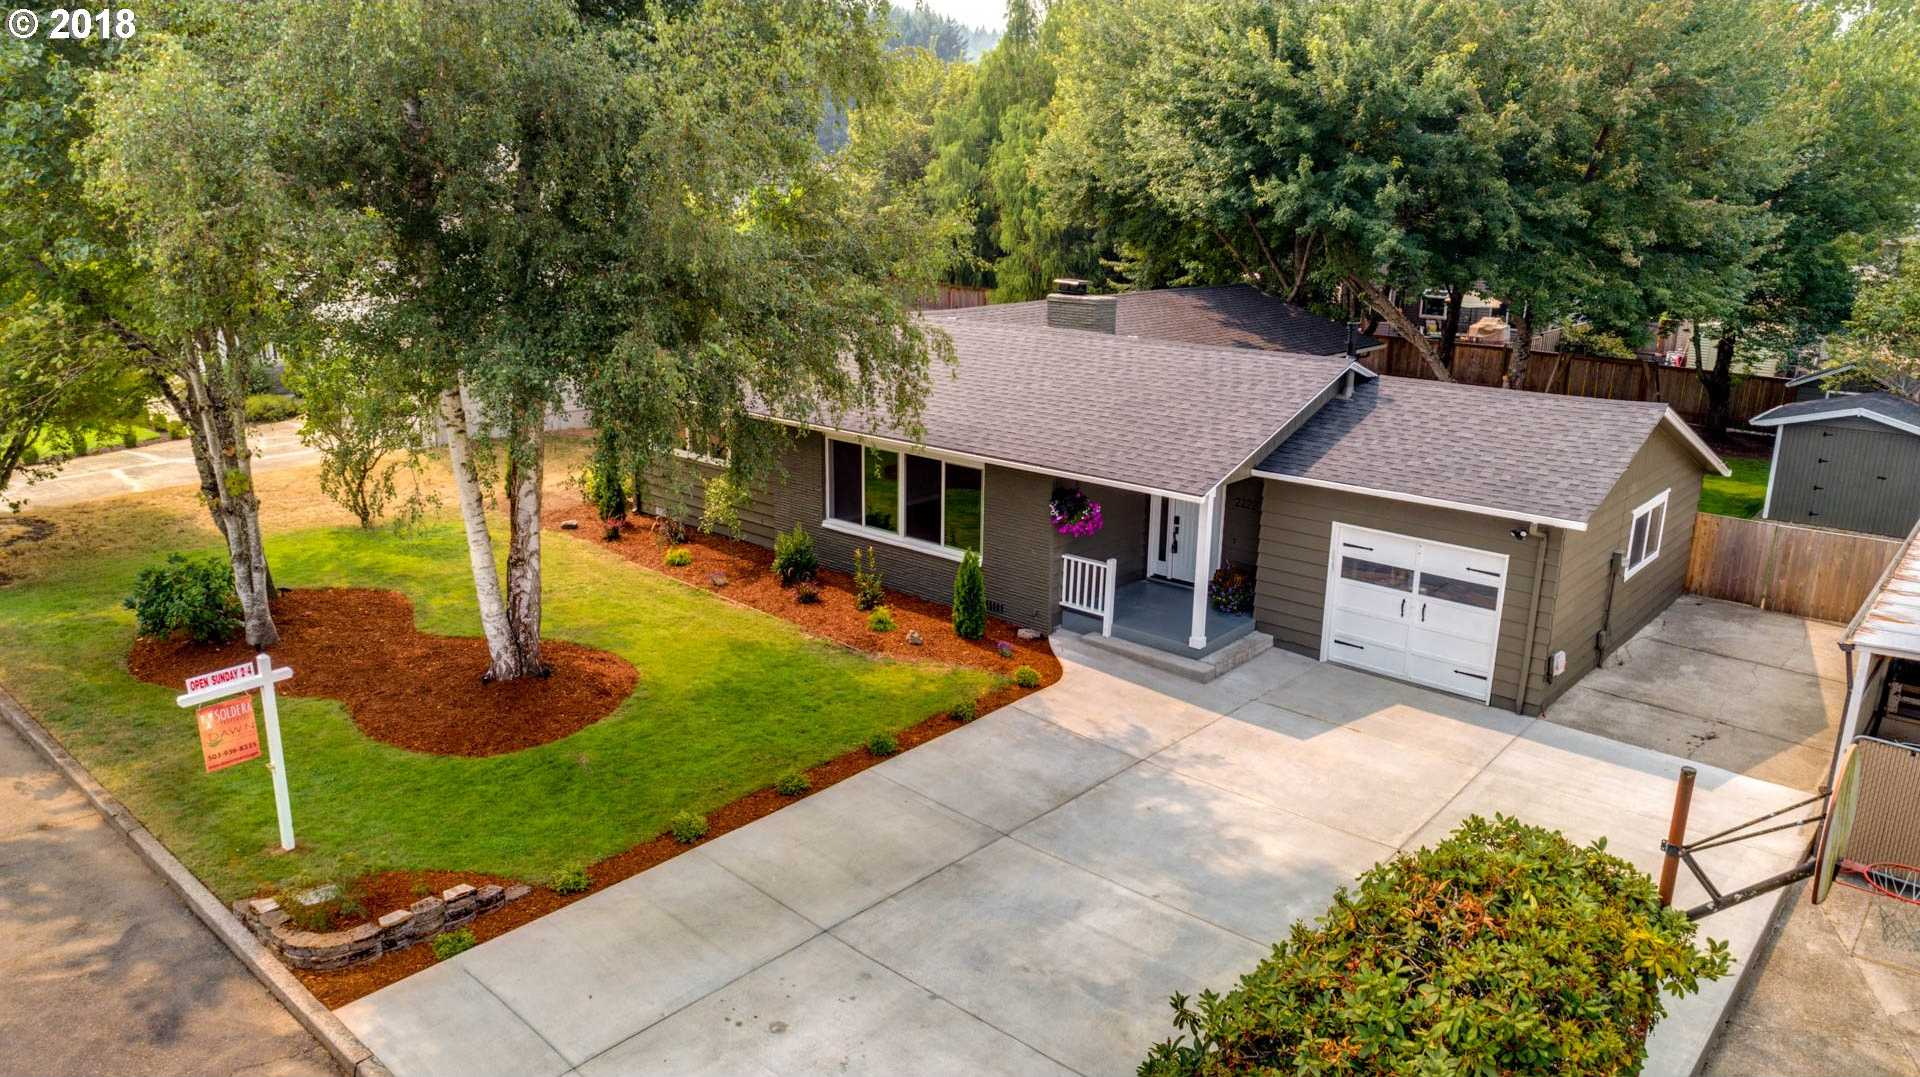 $485,000 - 3Br/2Ba -  for Sale in West Linn